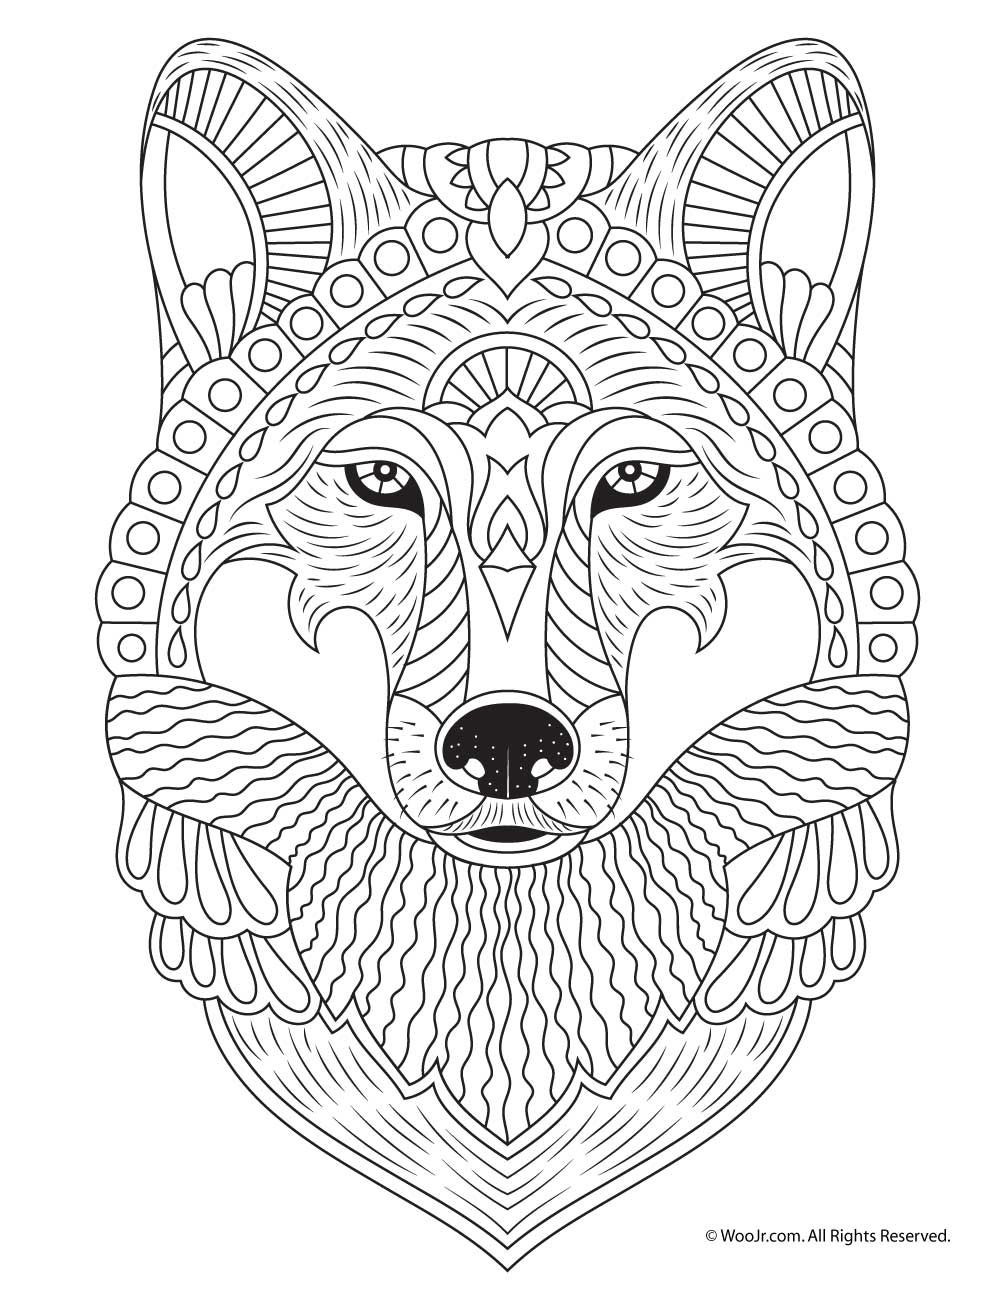 coloring book wolf fantasy wolf printable adult coloring page from favoreads wolf coloring book